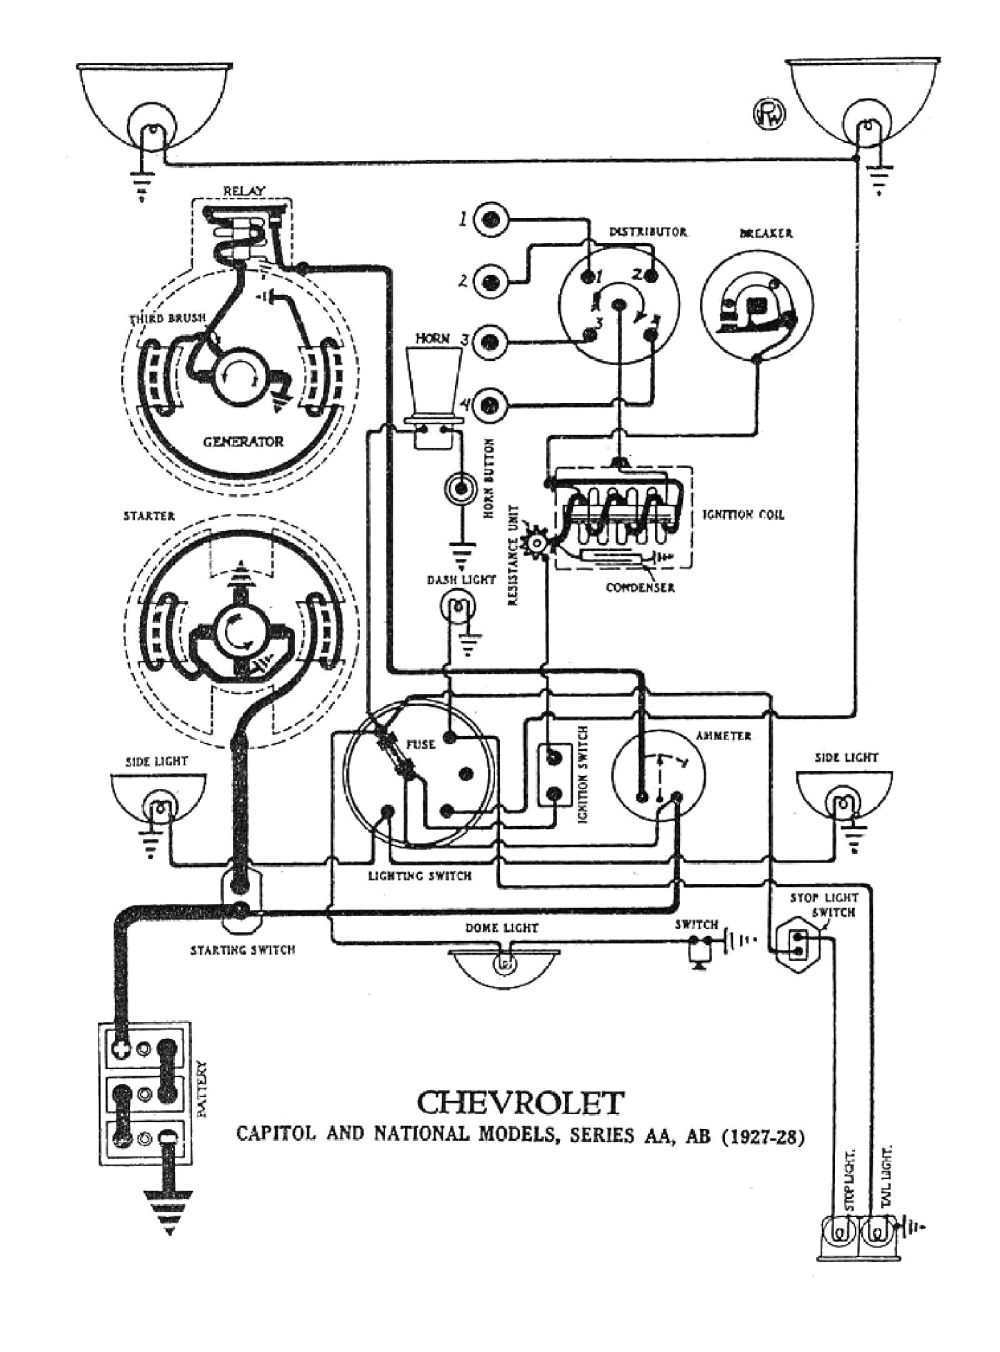 medium resolution of chevy wiring diagrams 1987 chevy wiring diagram 1927 capitol national models 1928 1928 wiring